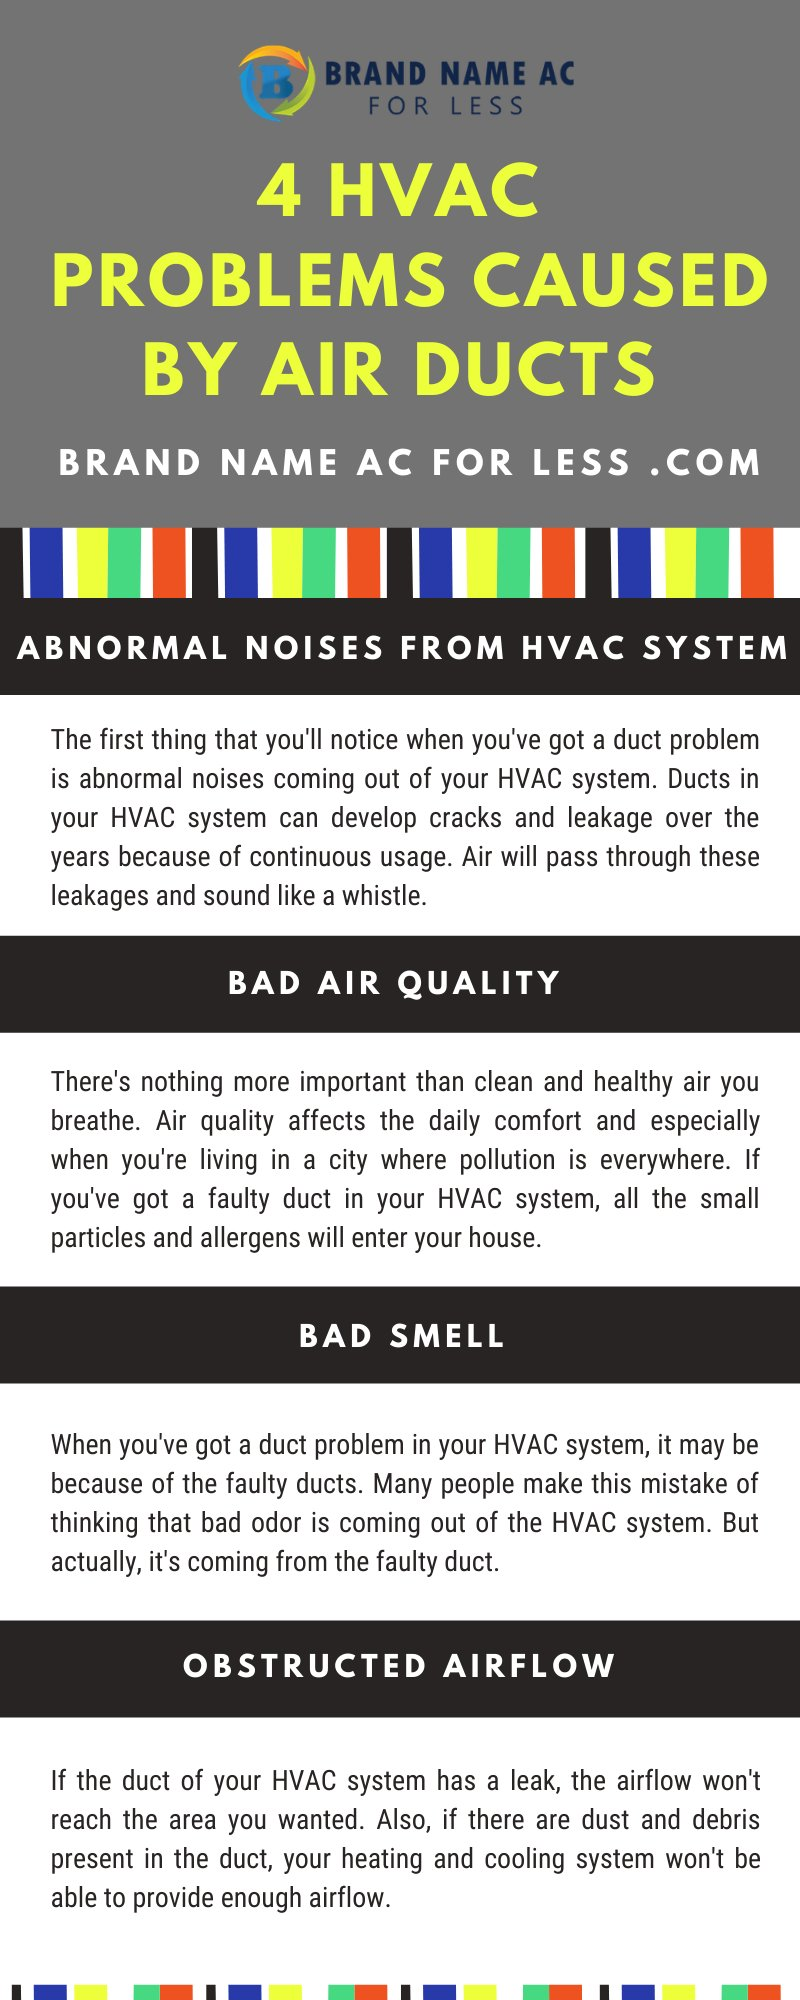 4 HVAC Problems Caused By Air Ducts [Infographic]